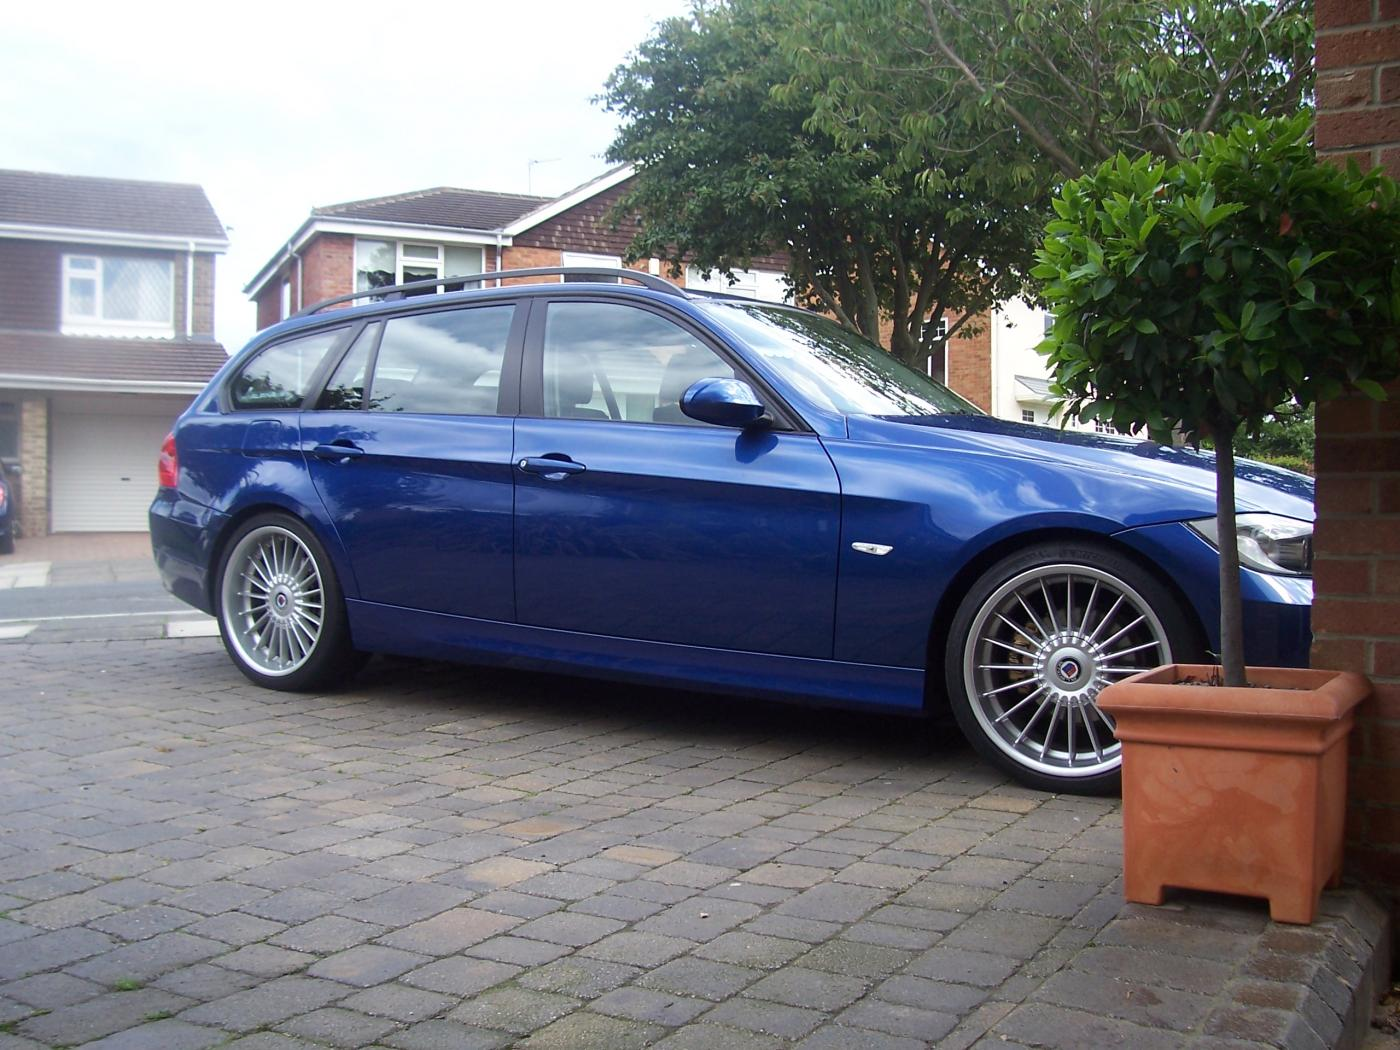 Alpina D Touring For Sale - Bmw alpina d3 for sale